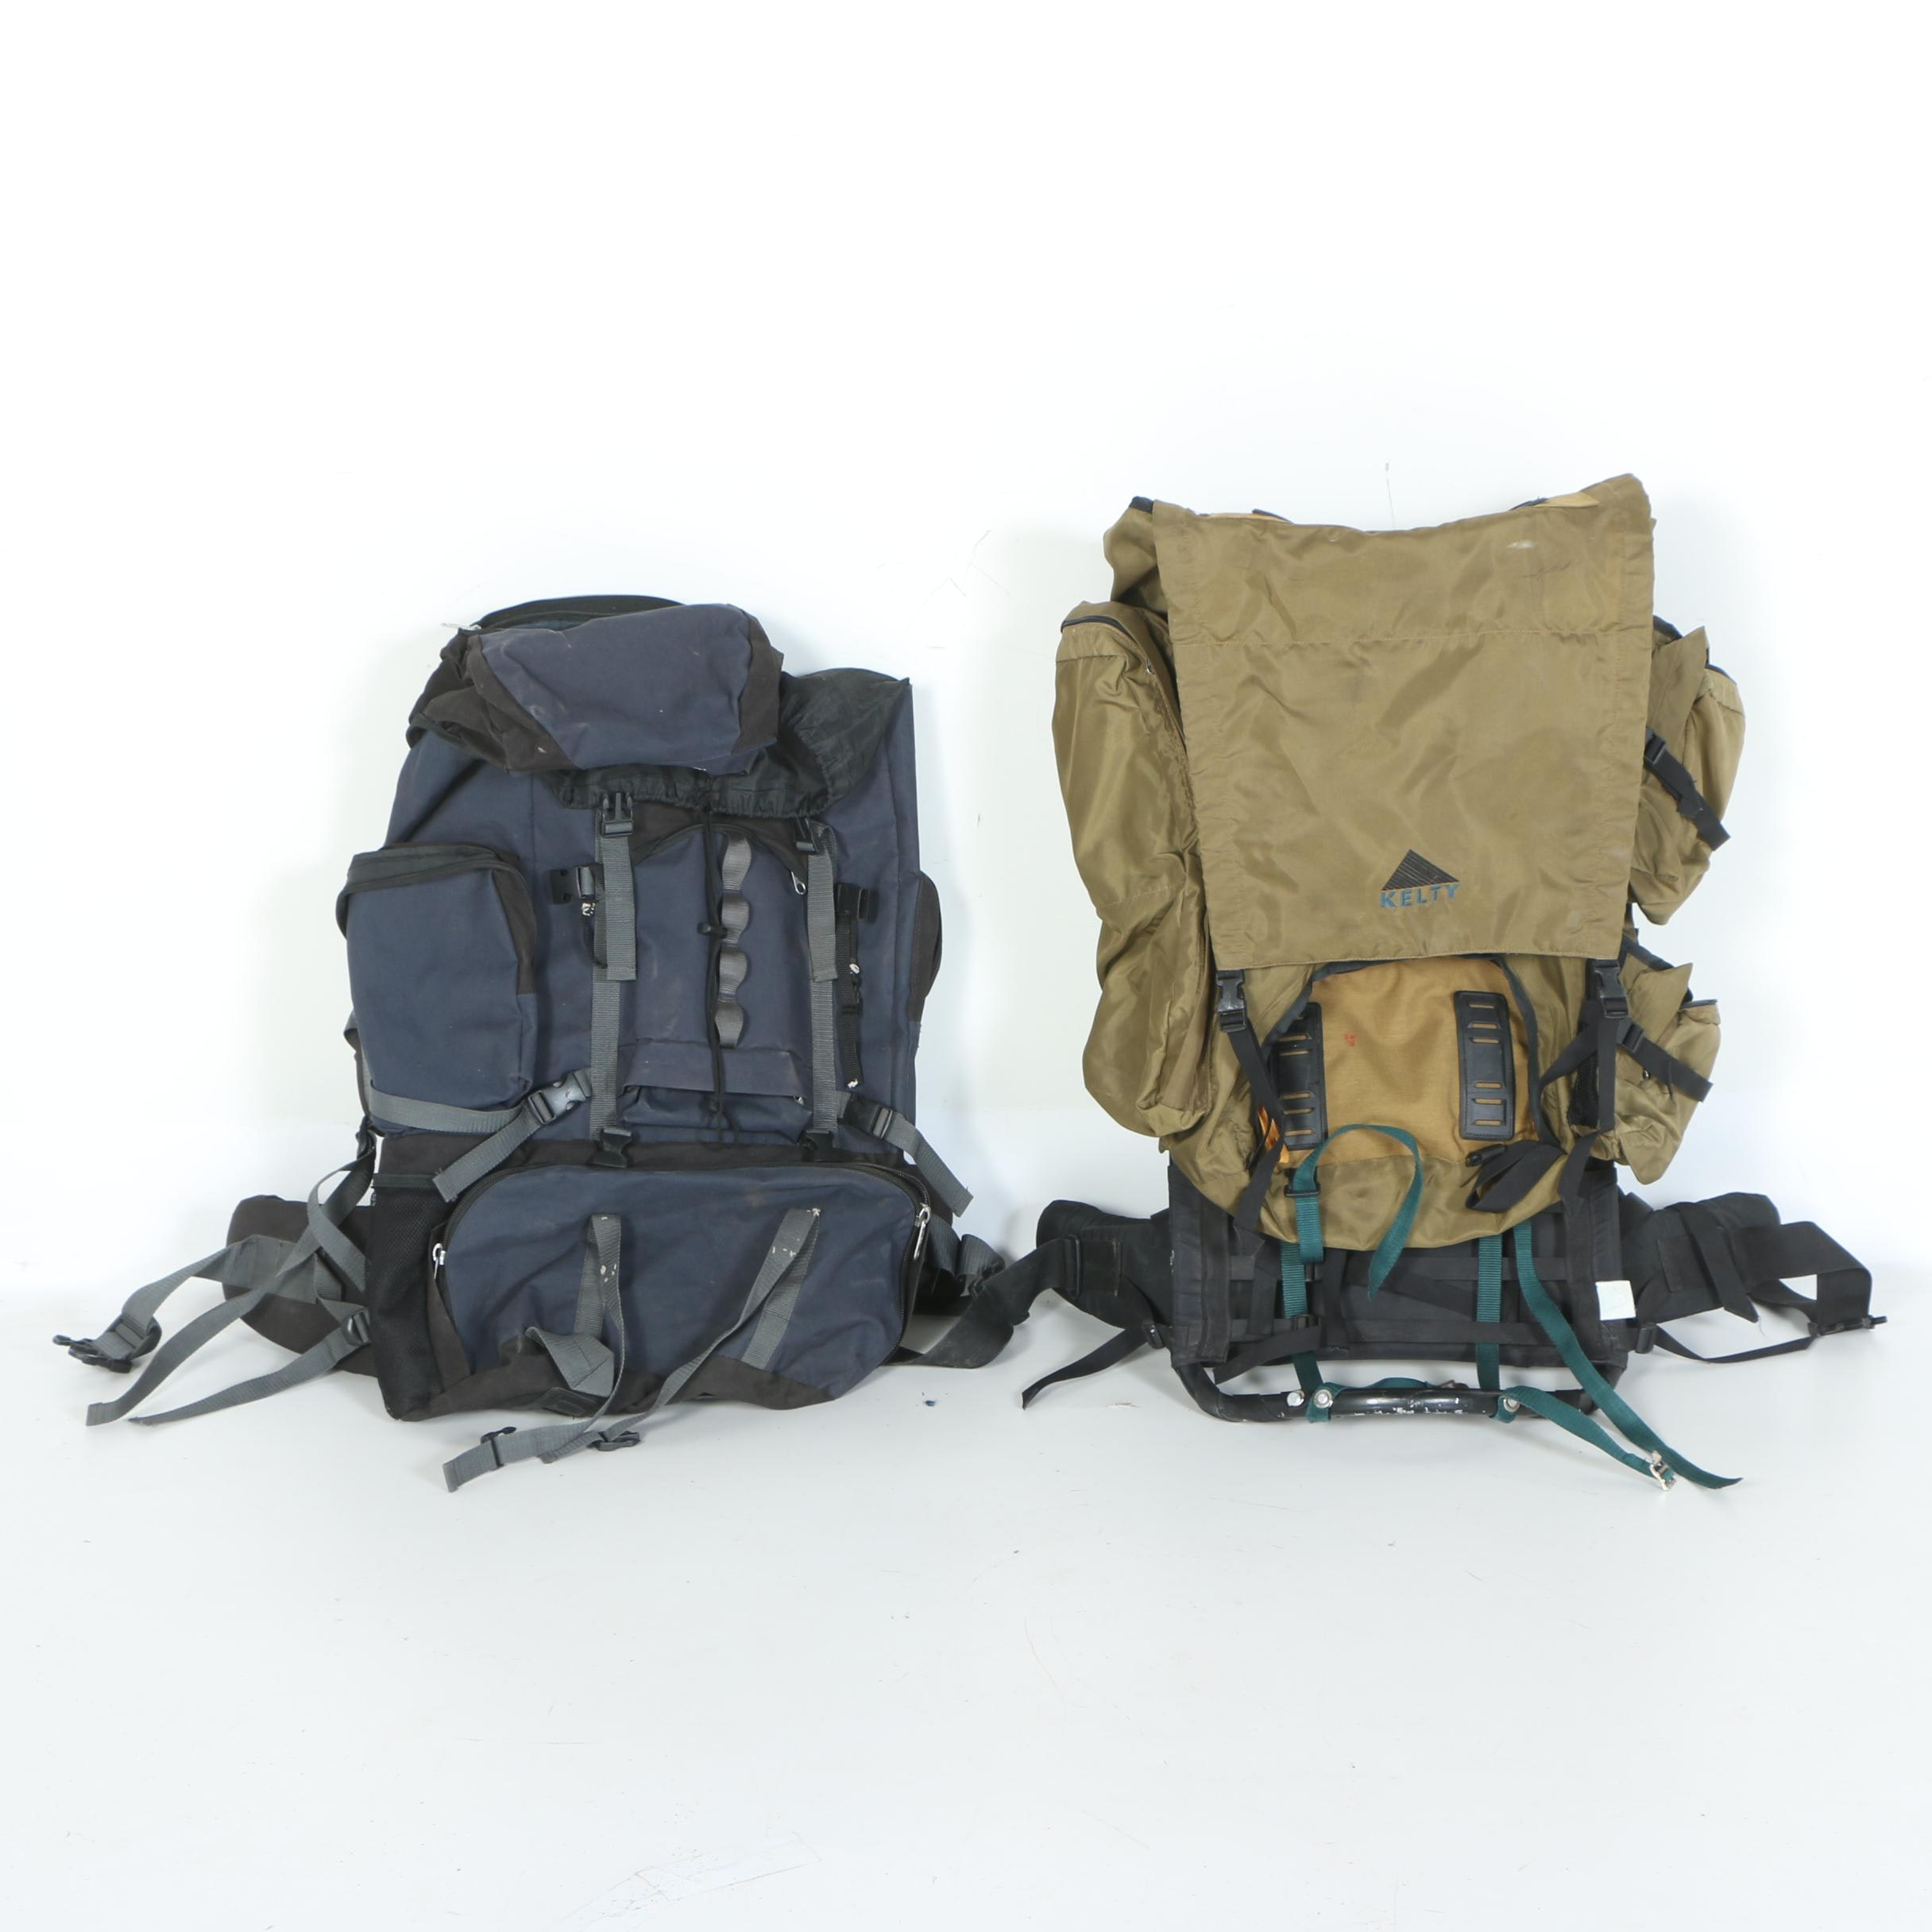 Kelty and Everest Backpacking Packs